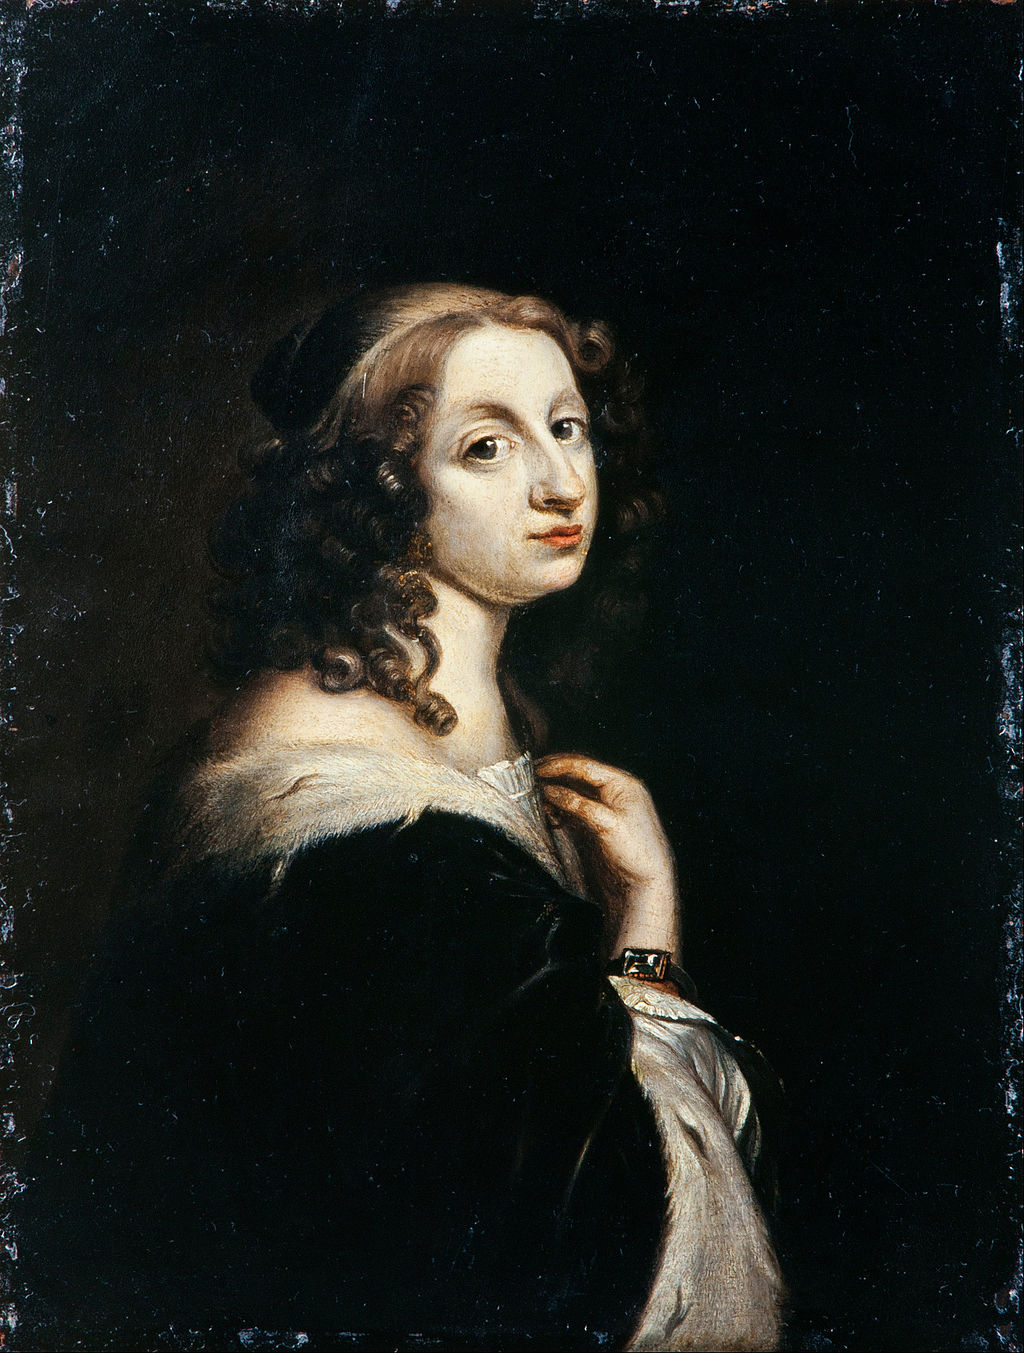 David_Beck_-_Christina,_Queen_of_Sweden_1644-1654_-_Google_Art_Project.jpg